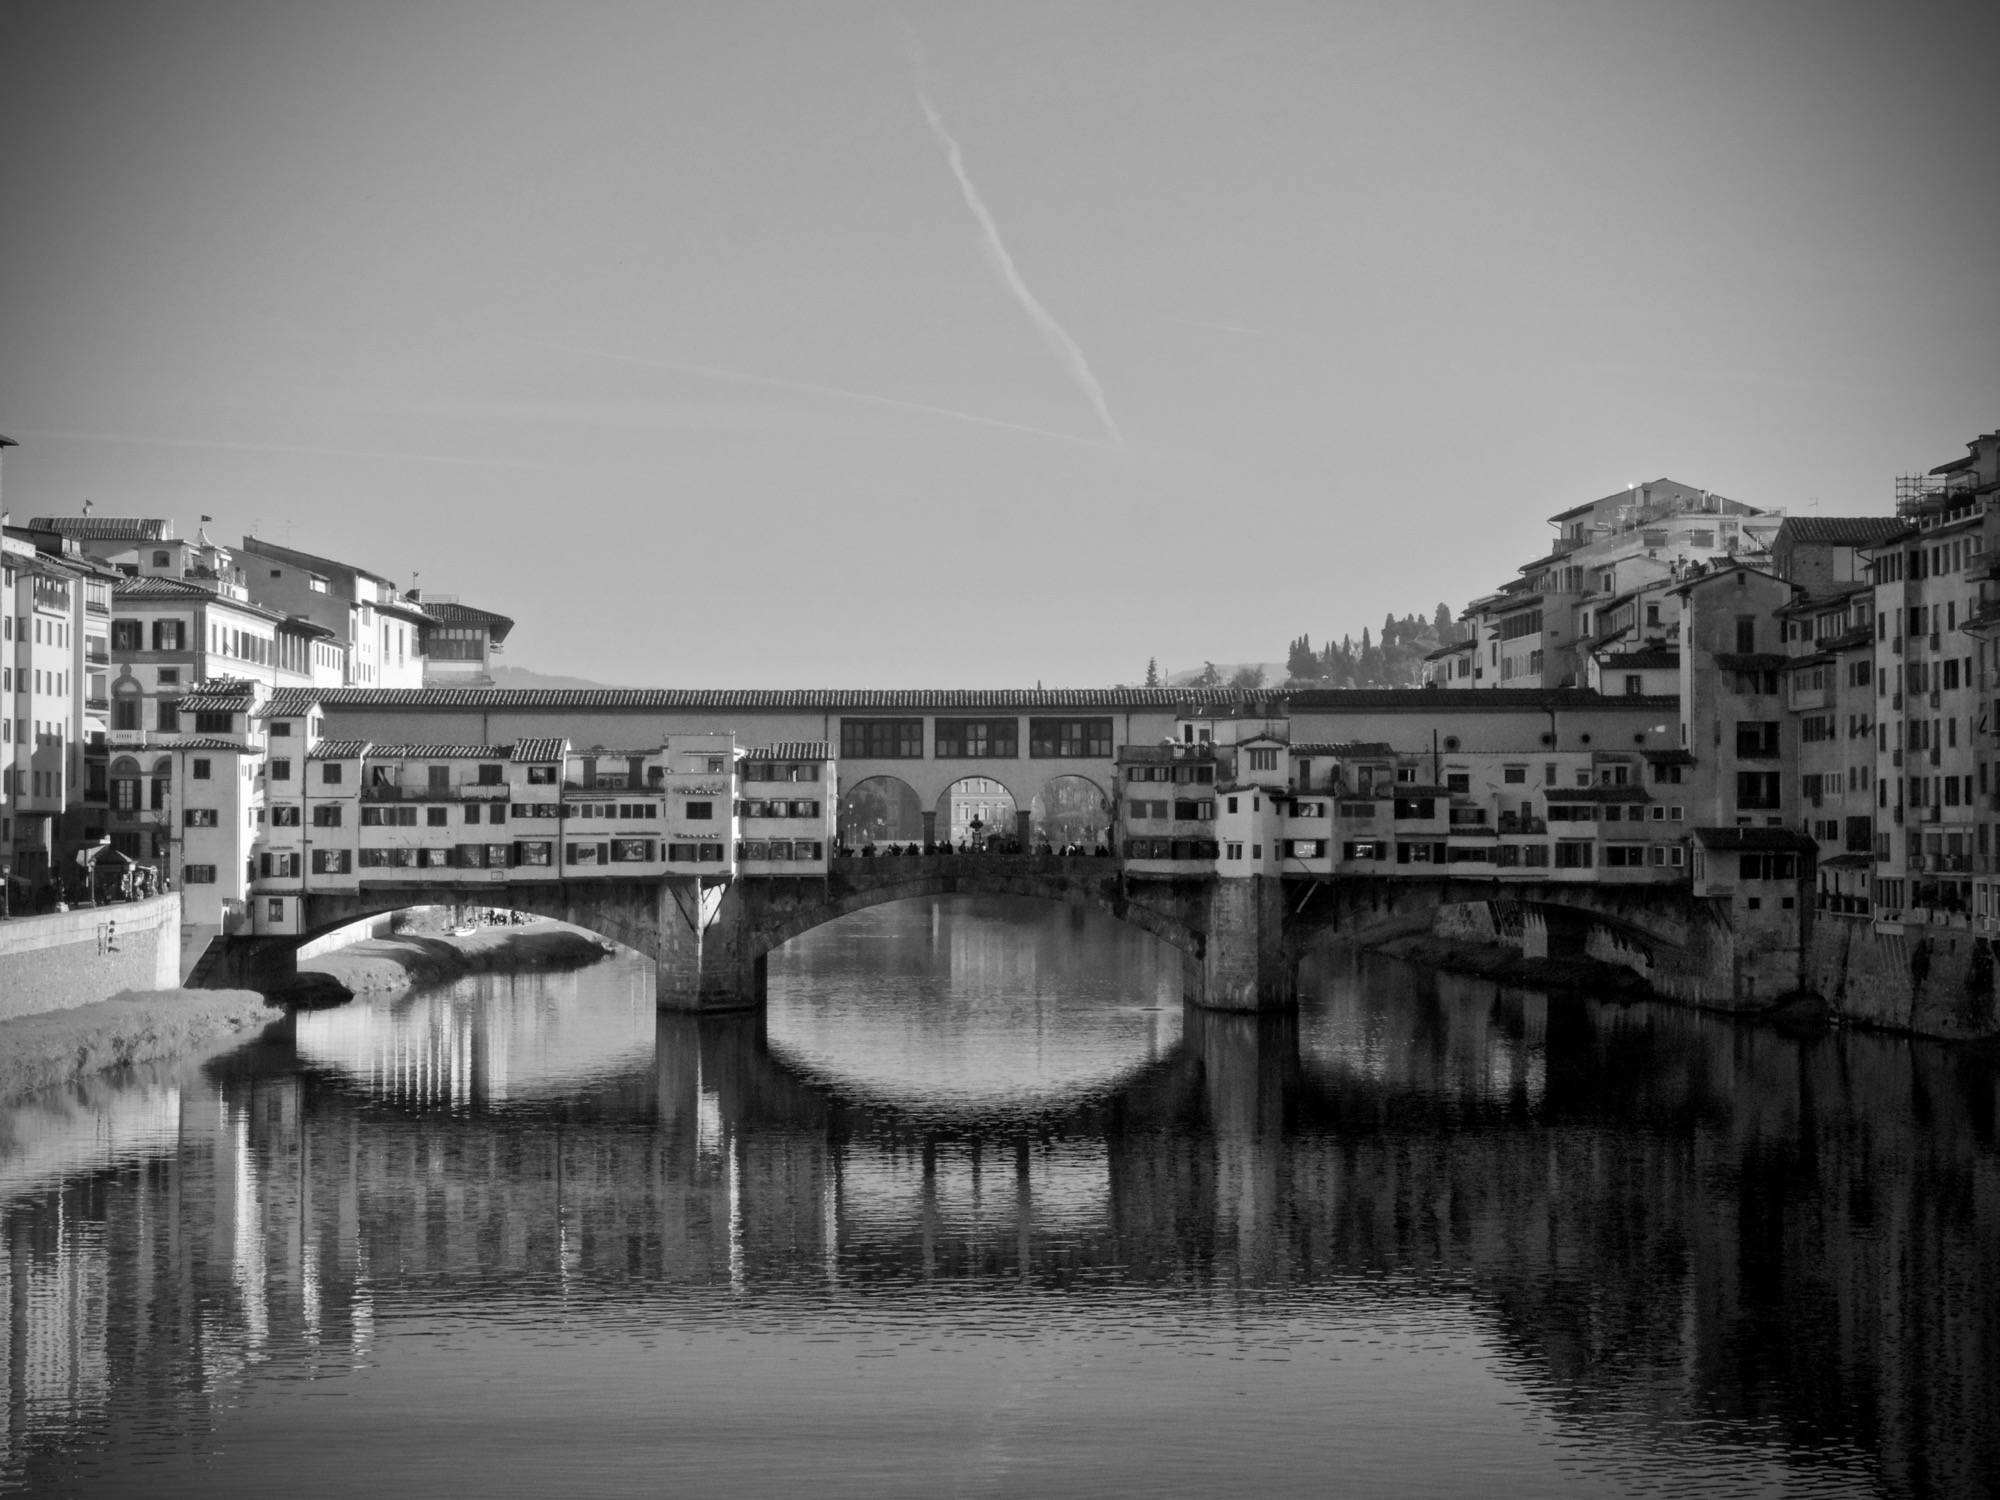 Massimiliano_Scarpa_photo_Firenze 2016 - Ponte Vecchio